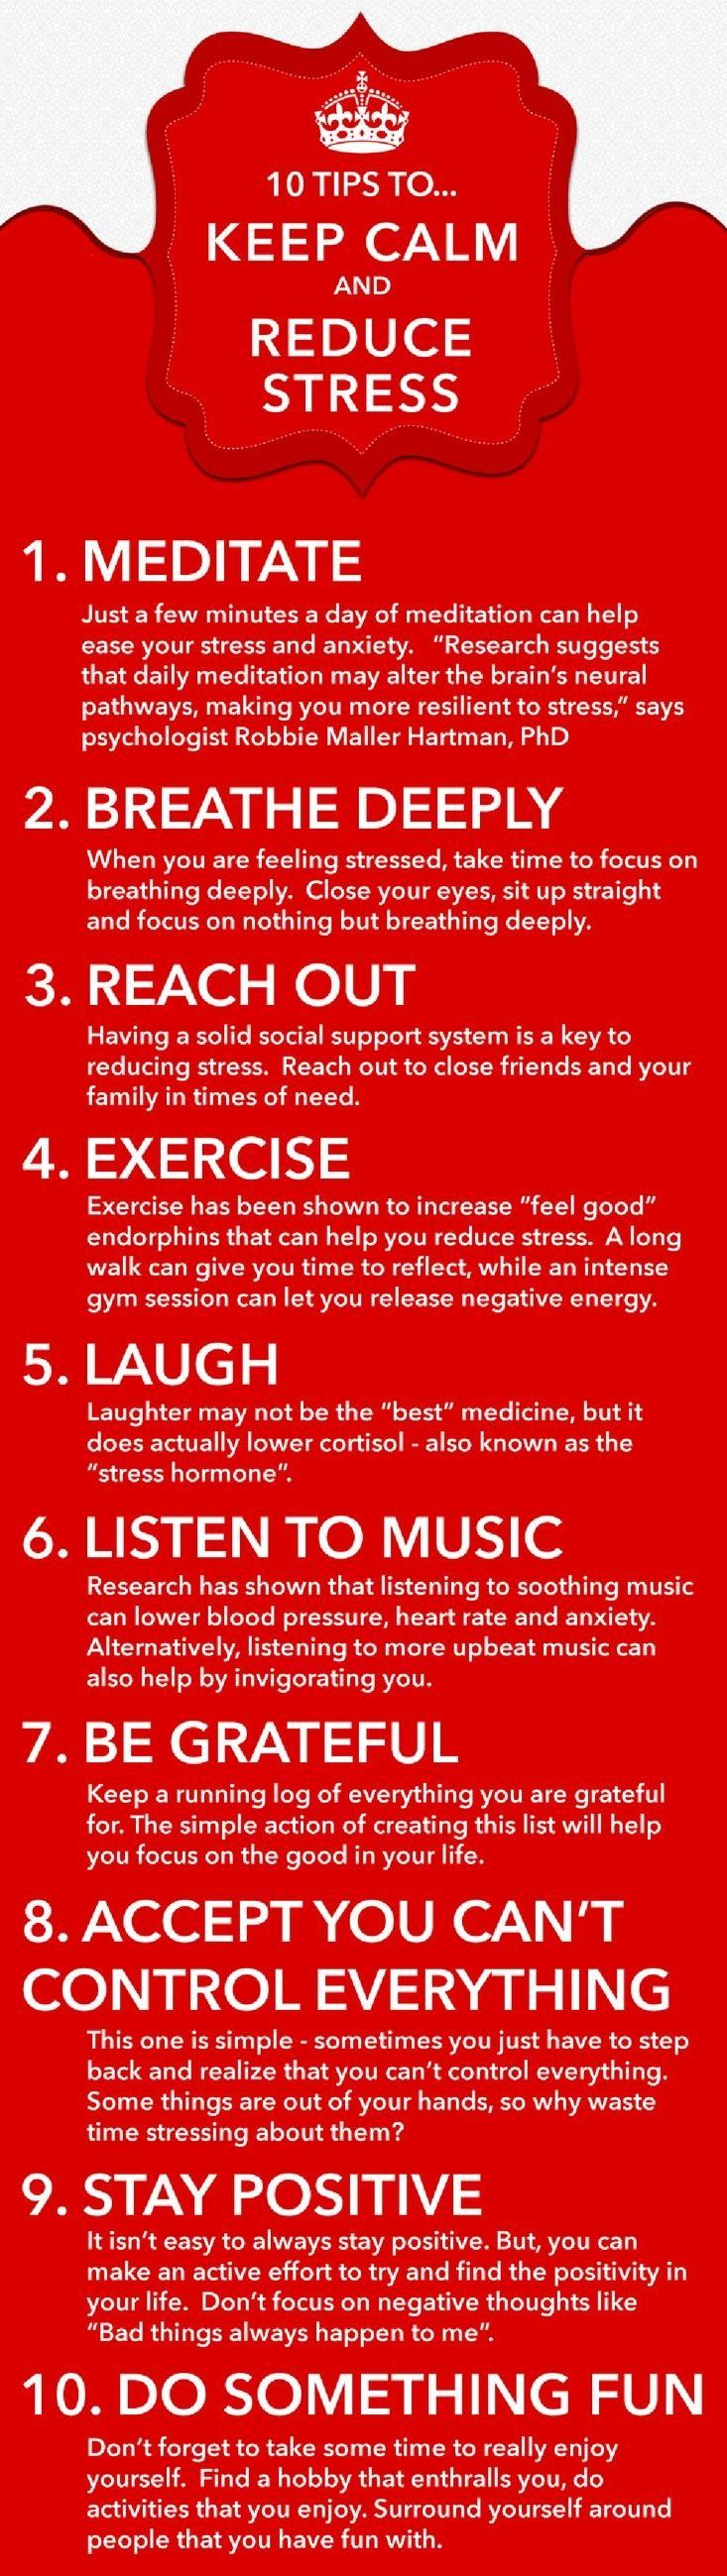 how to destress yourself at work